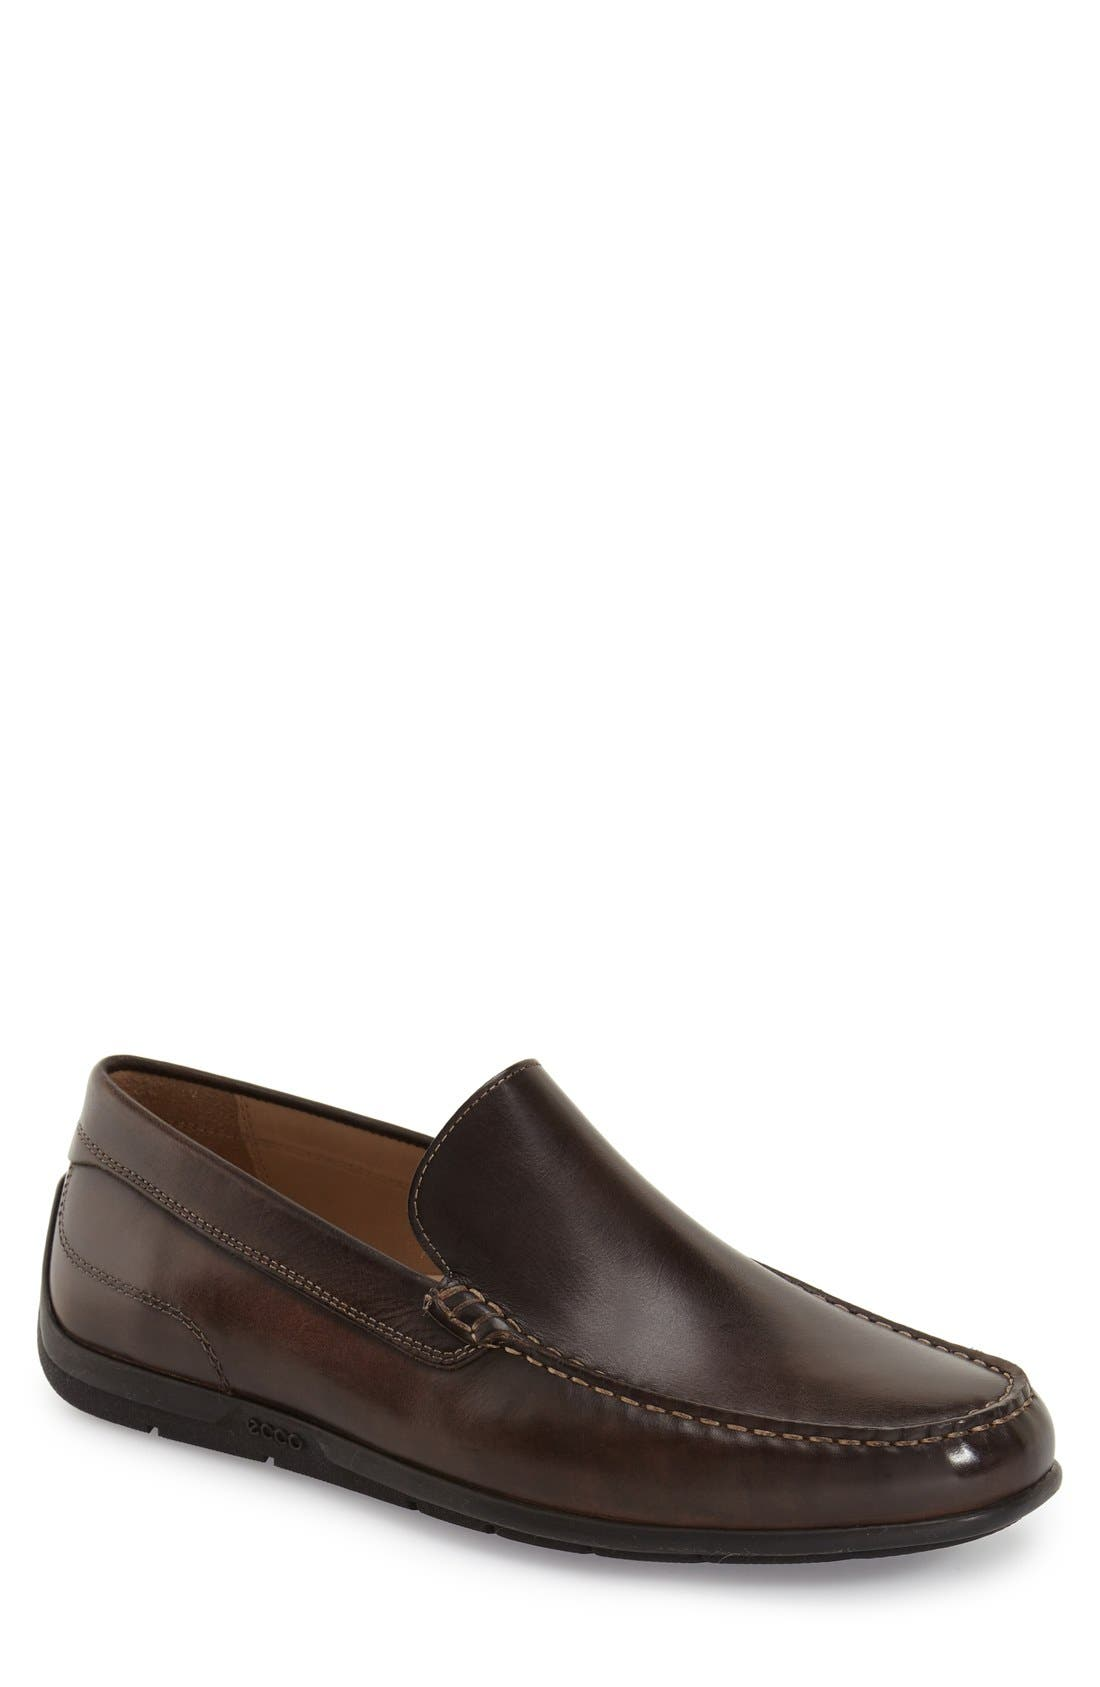 Alternate Image 1 Selected - ECCO 'Classic Moc II' Venetian Loafer (Men)